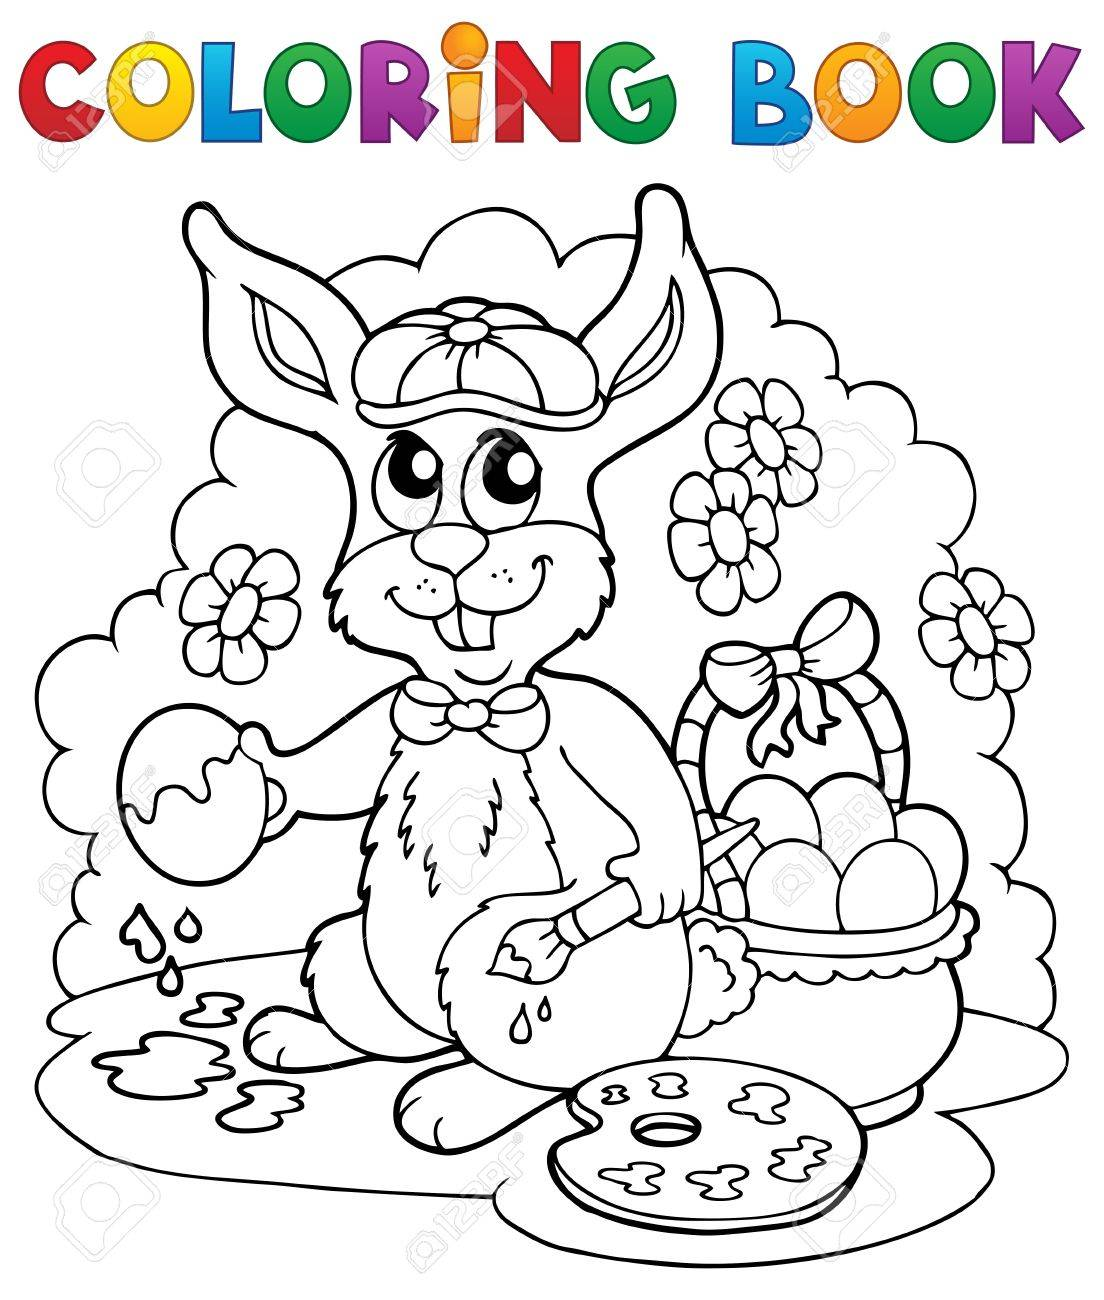 coloring book rabbit pictures : Coloring Book Rabbit Theme 3 Vector Illustration Stock Vector 17368279